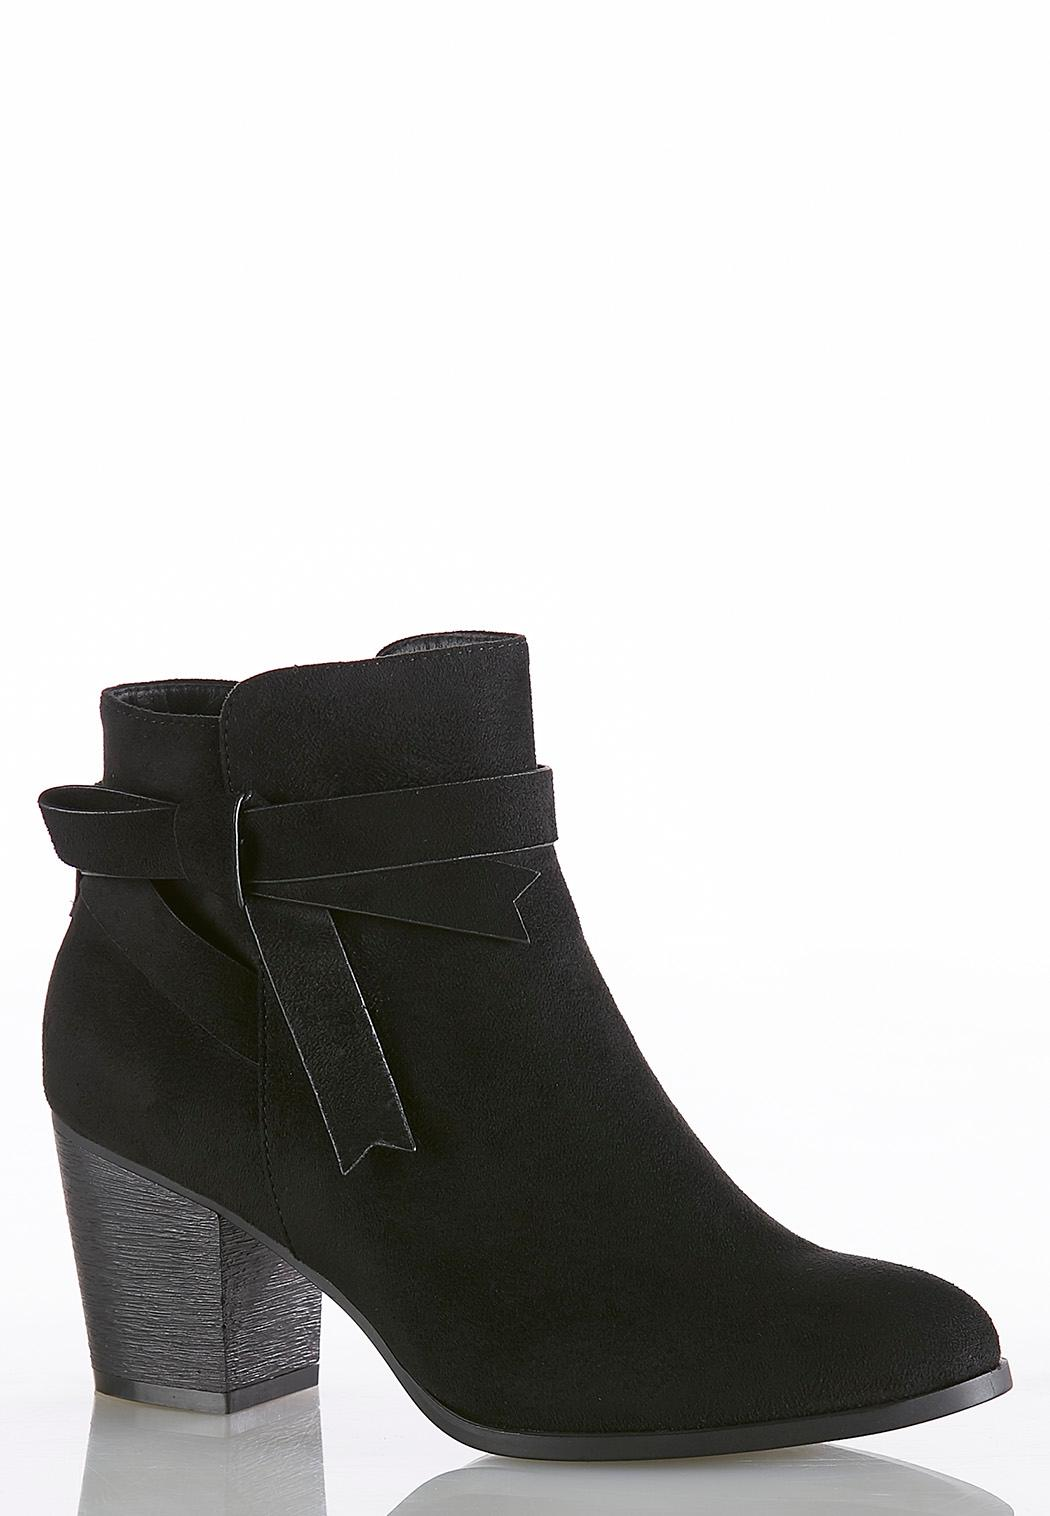 10f2bed306a1 Women s Boots